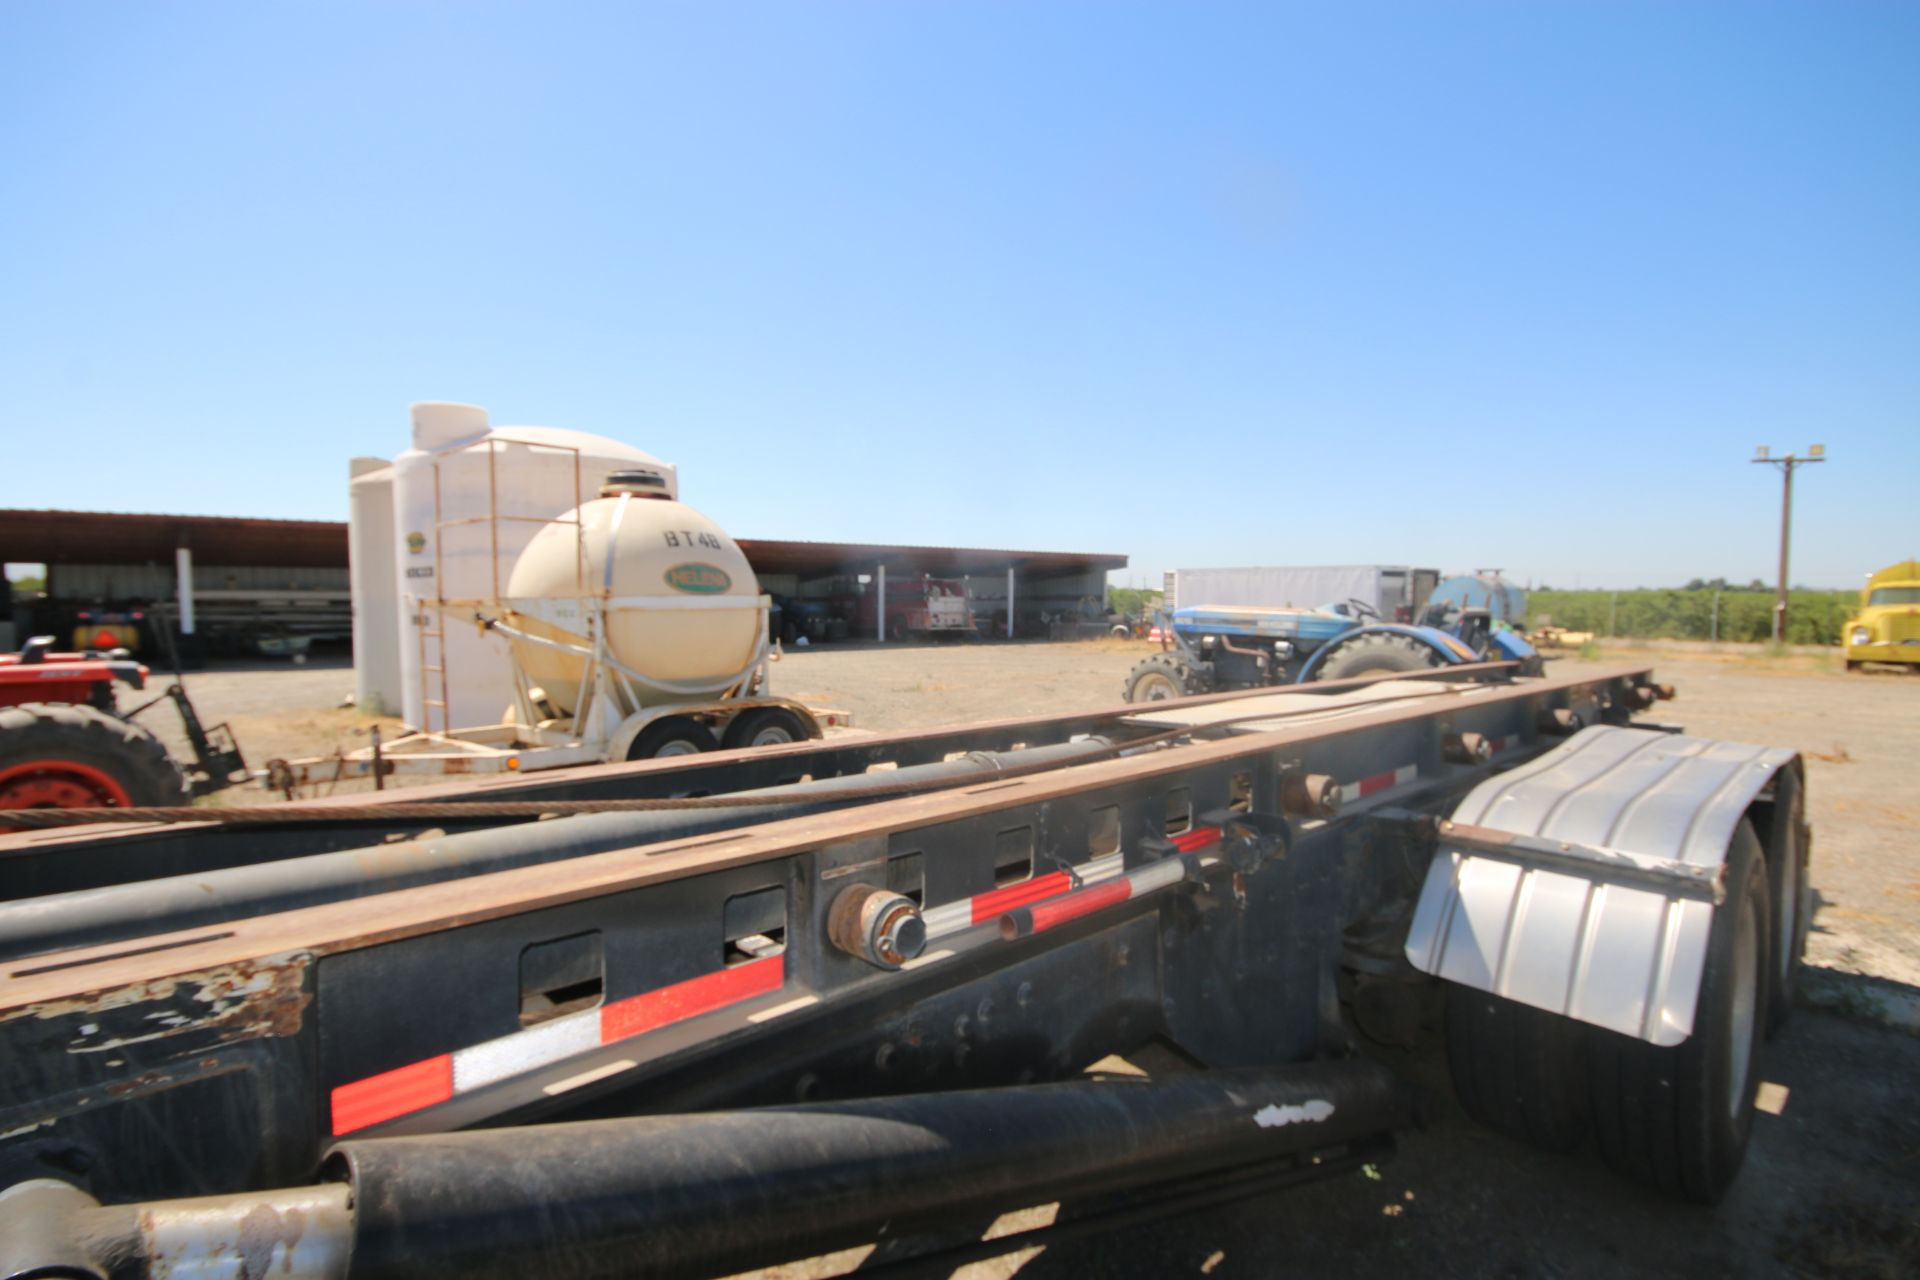 1996 Kenworth 3-Axle Roll-Off Straight Truck, VIN #: 1XKDDB9XOTS687107, with 24,722 Miles, License - Image 9 of 30